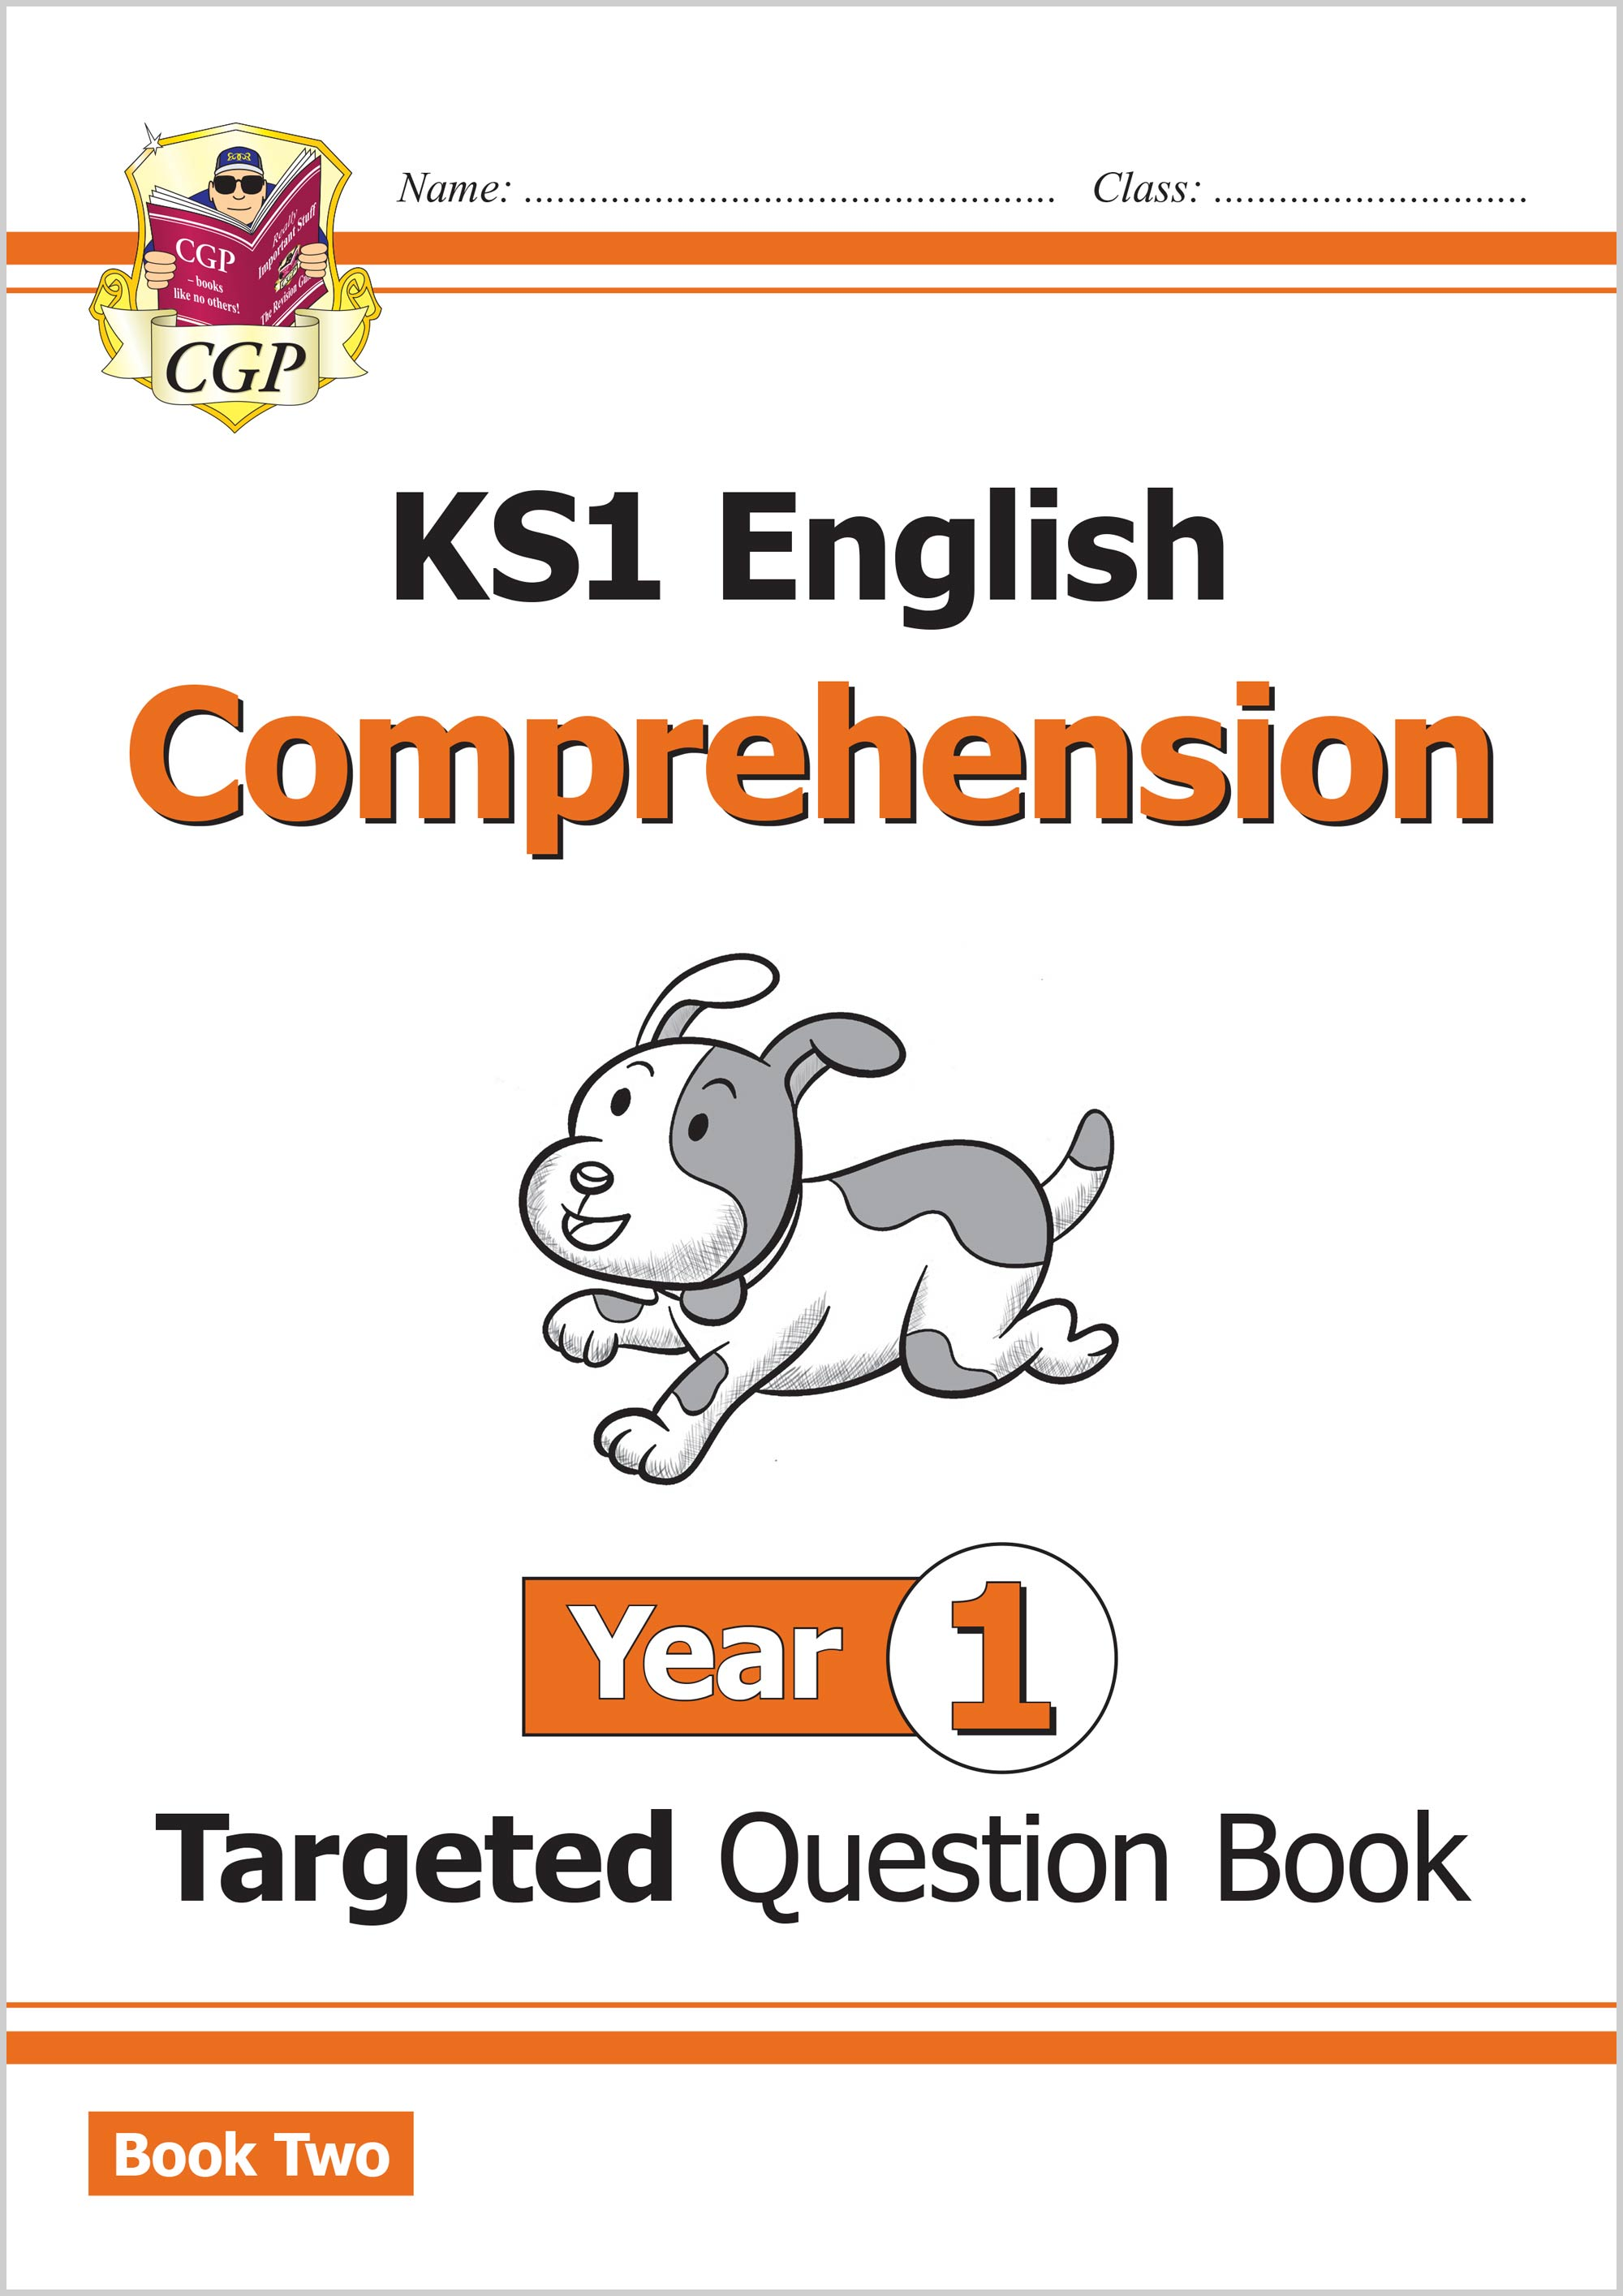 E1CW211 - New KS1 English Targeted Question Book: Year 1 Comprehension - Book 2